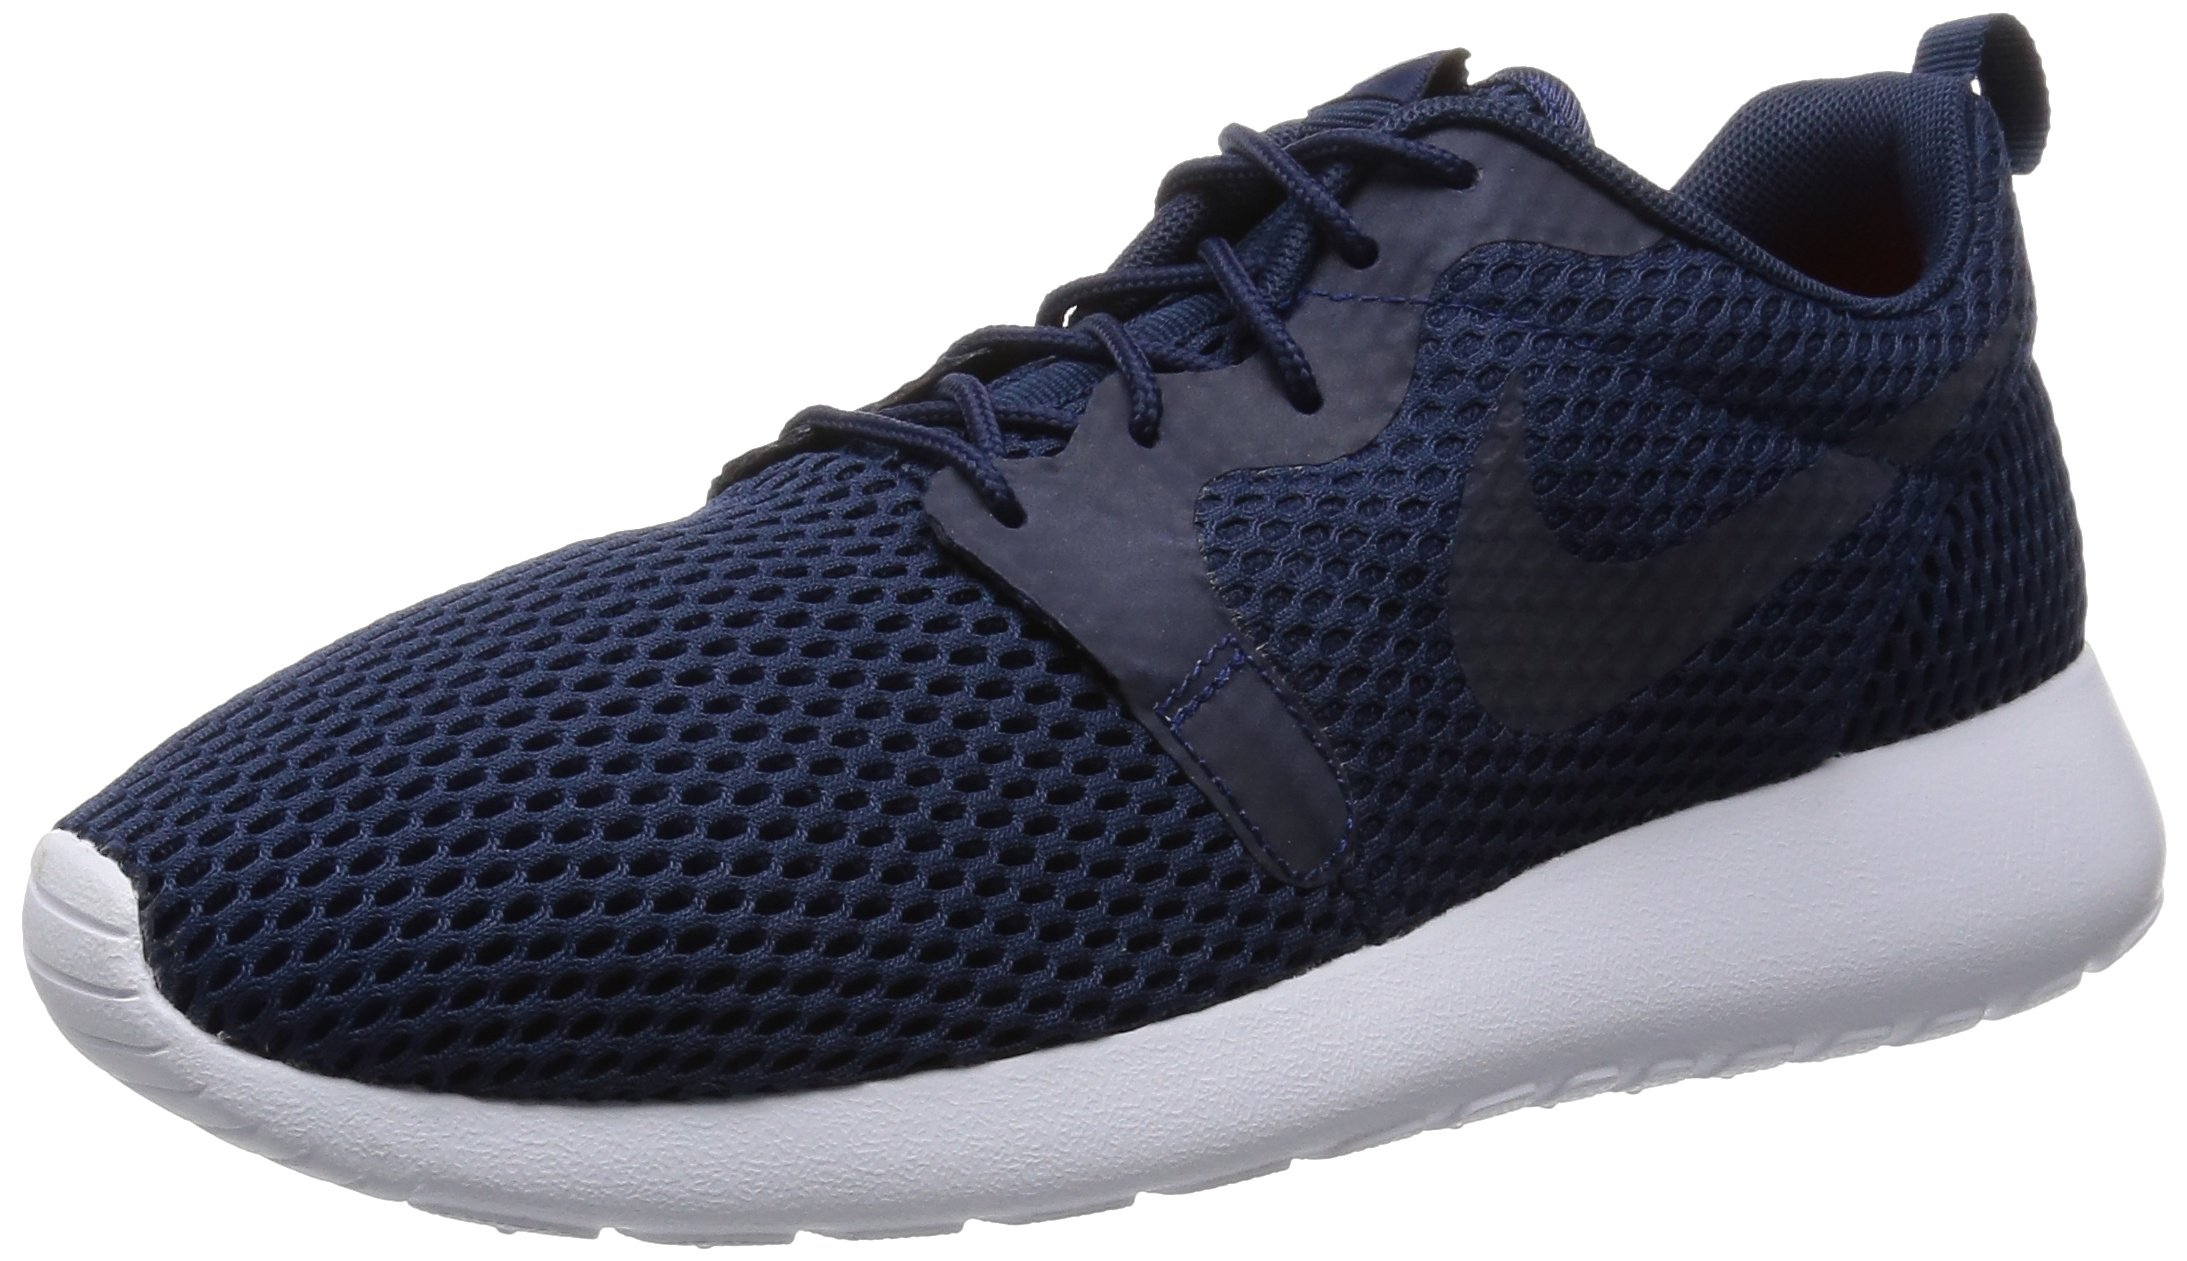 f1aed651fc40 Galleon - NIKE Roshe One HYP BR Men s Sneaker (11 D(M) US